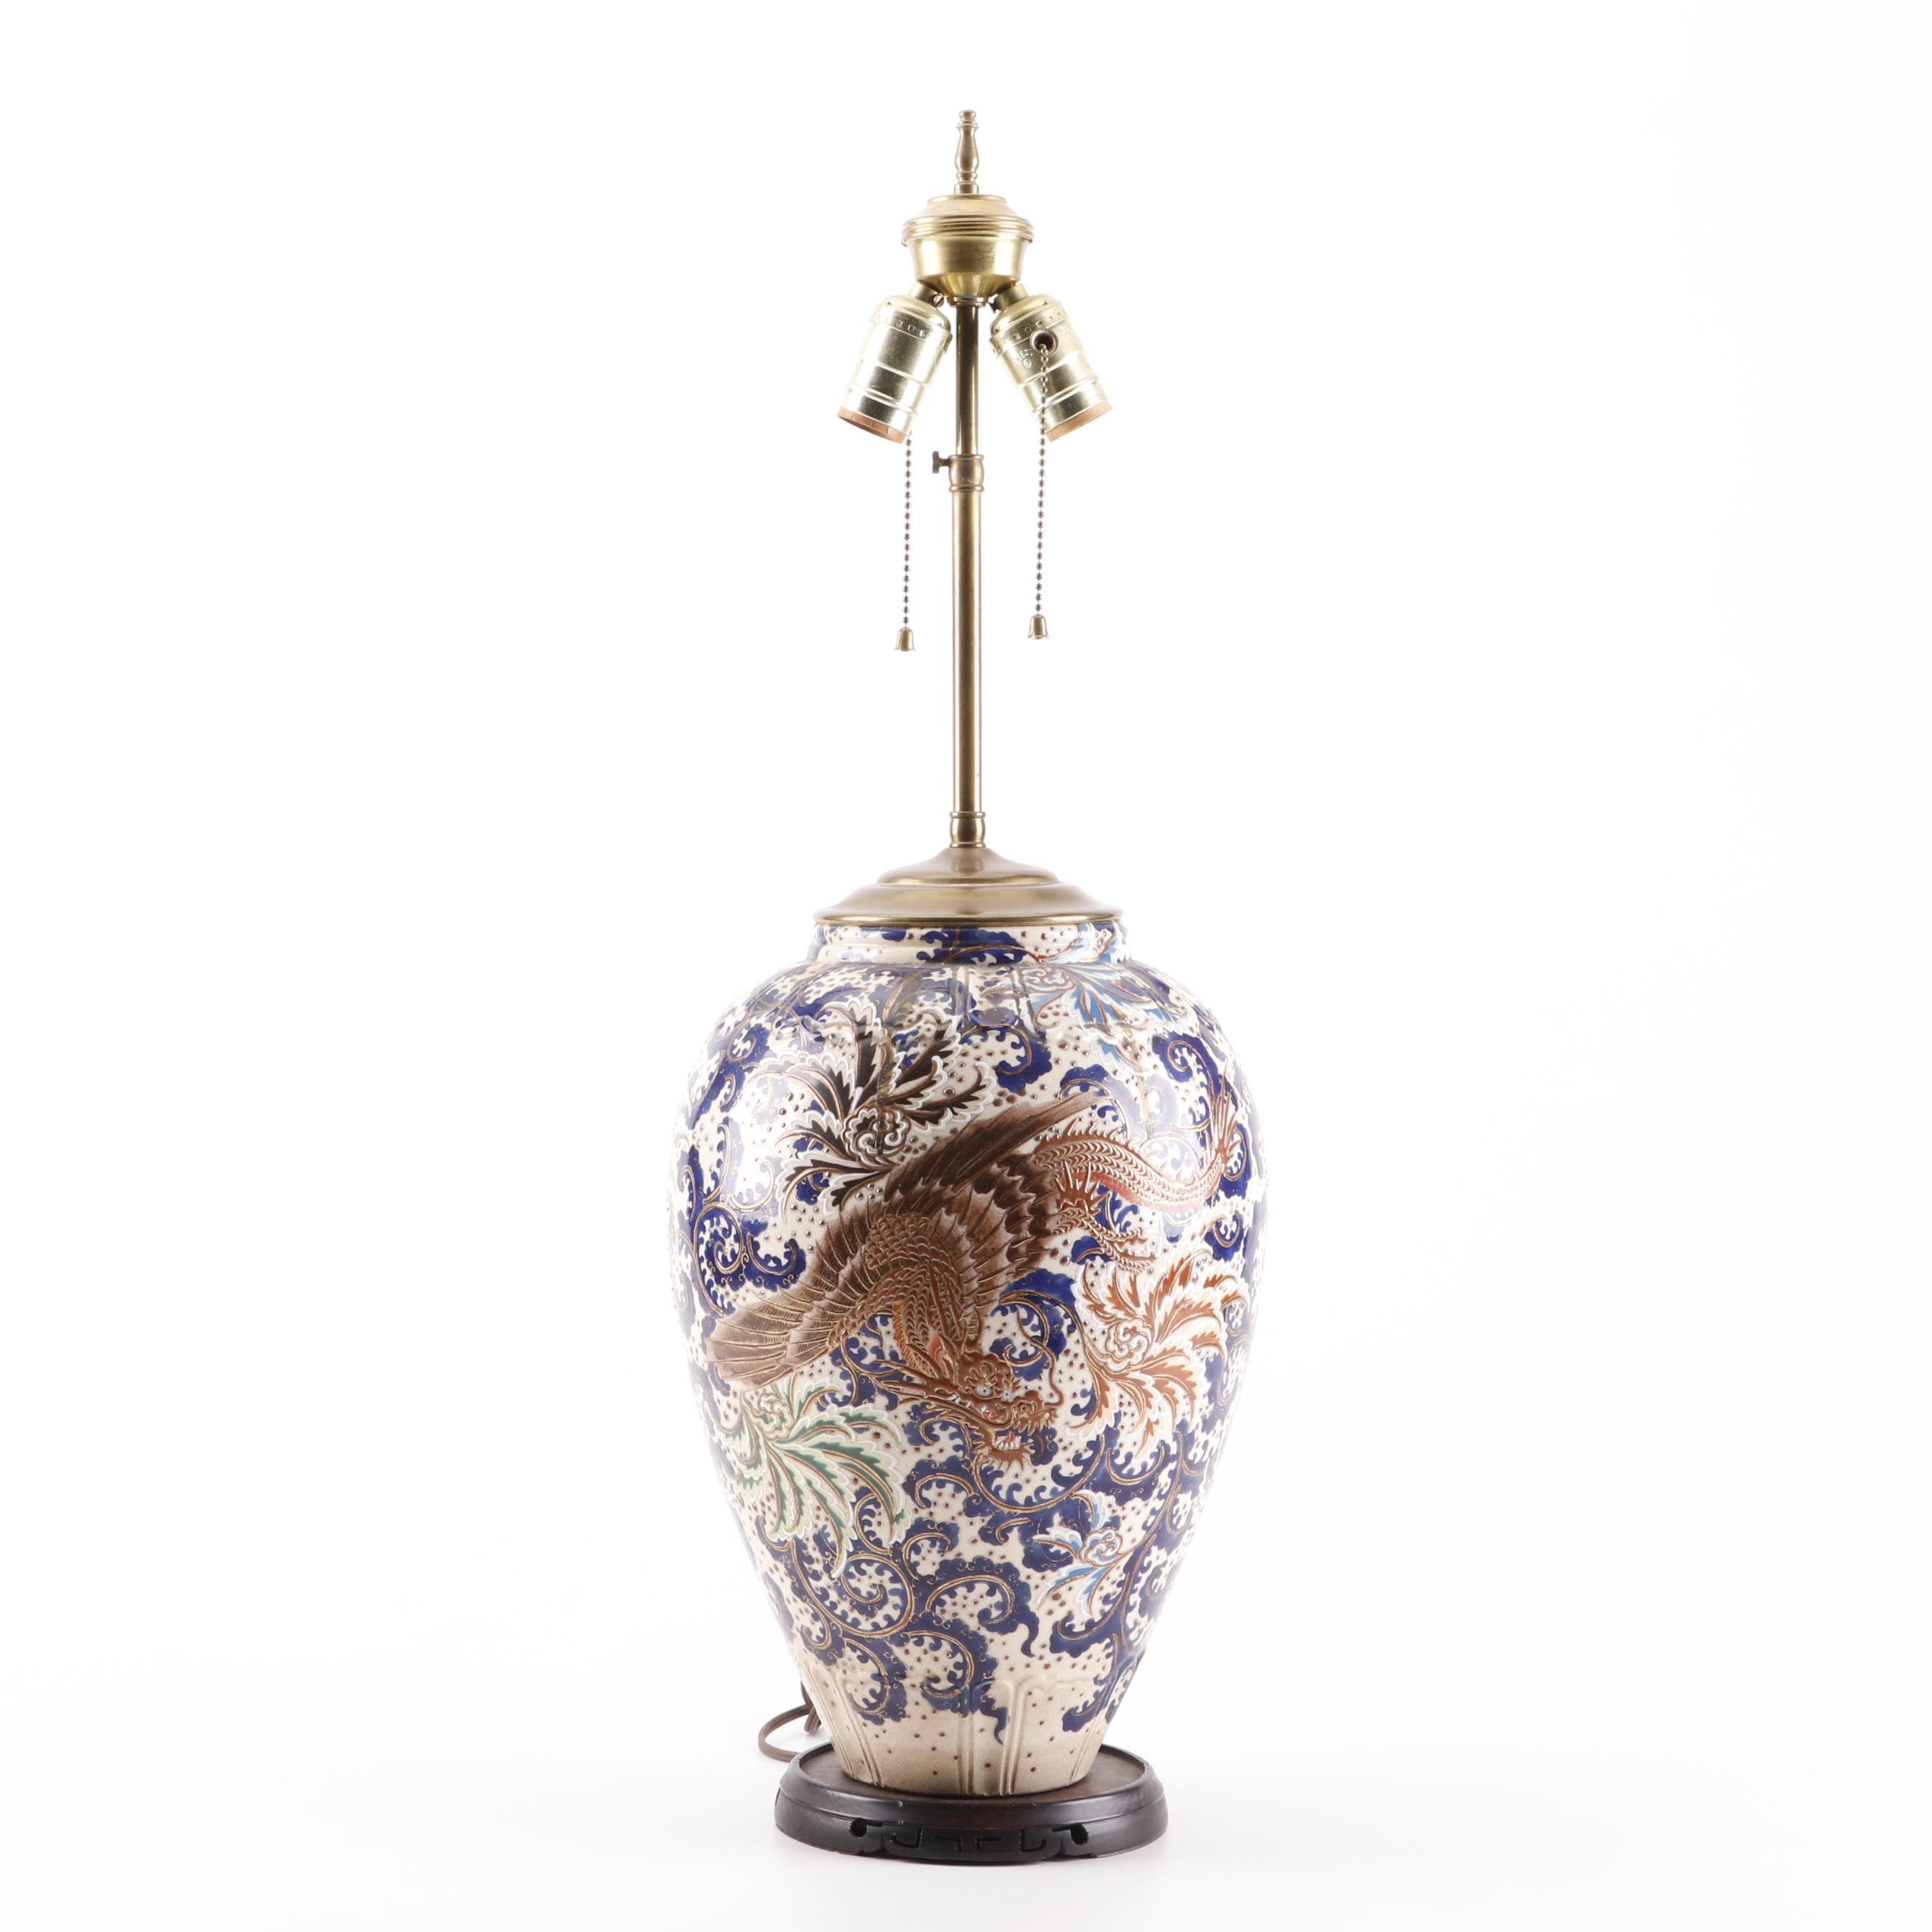 Japanese Satsuma Hand-Painted Ceramic Lamp with Dragon, Early 20th Century